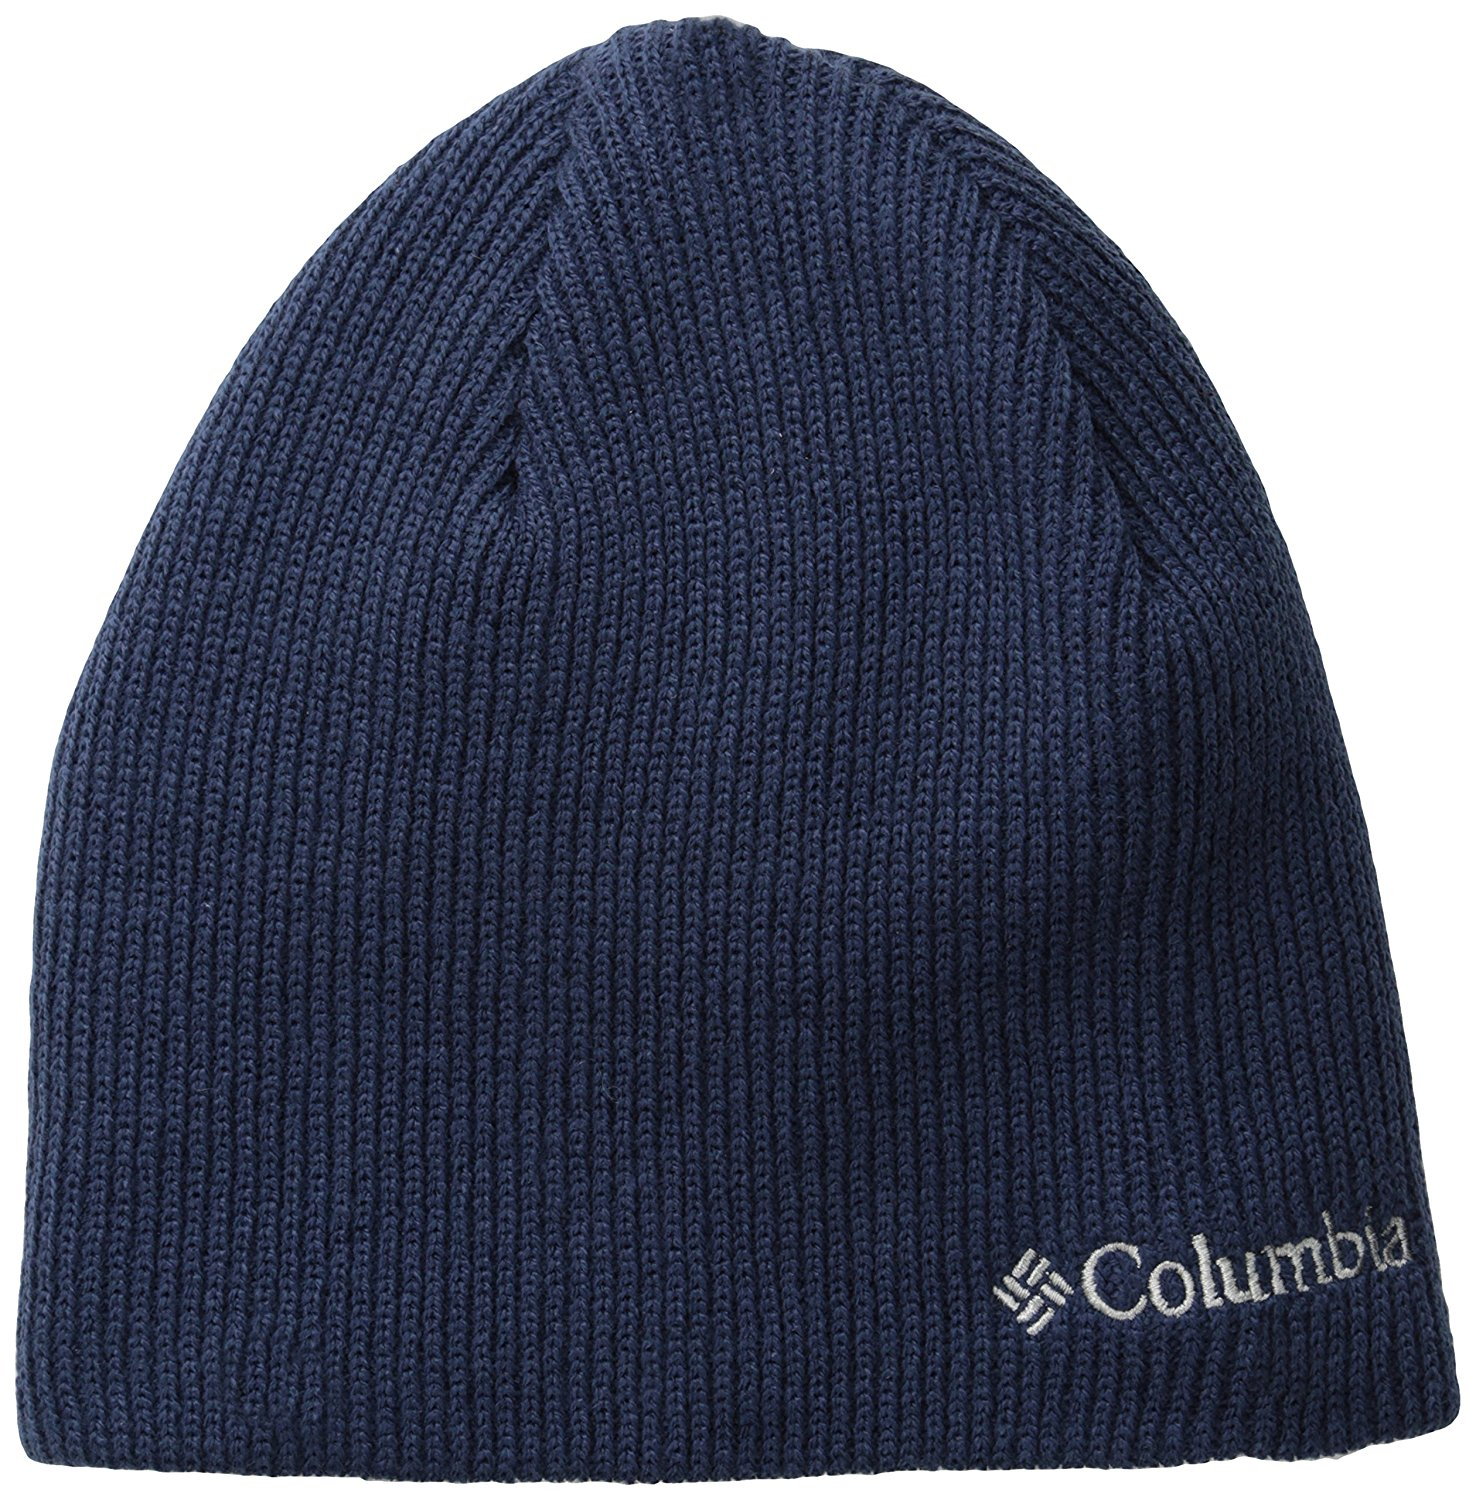 Columbia men HAT